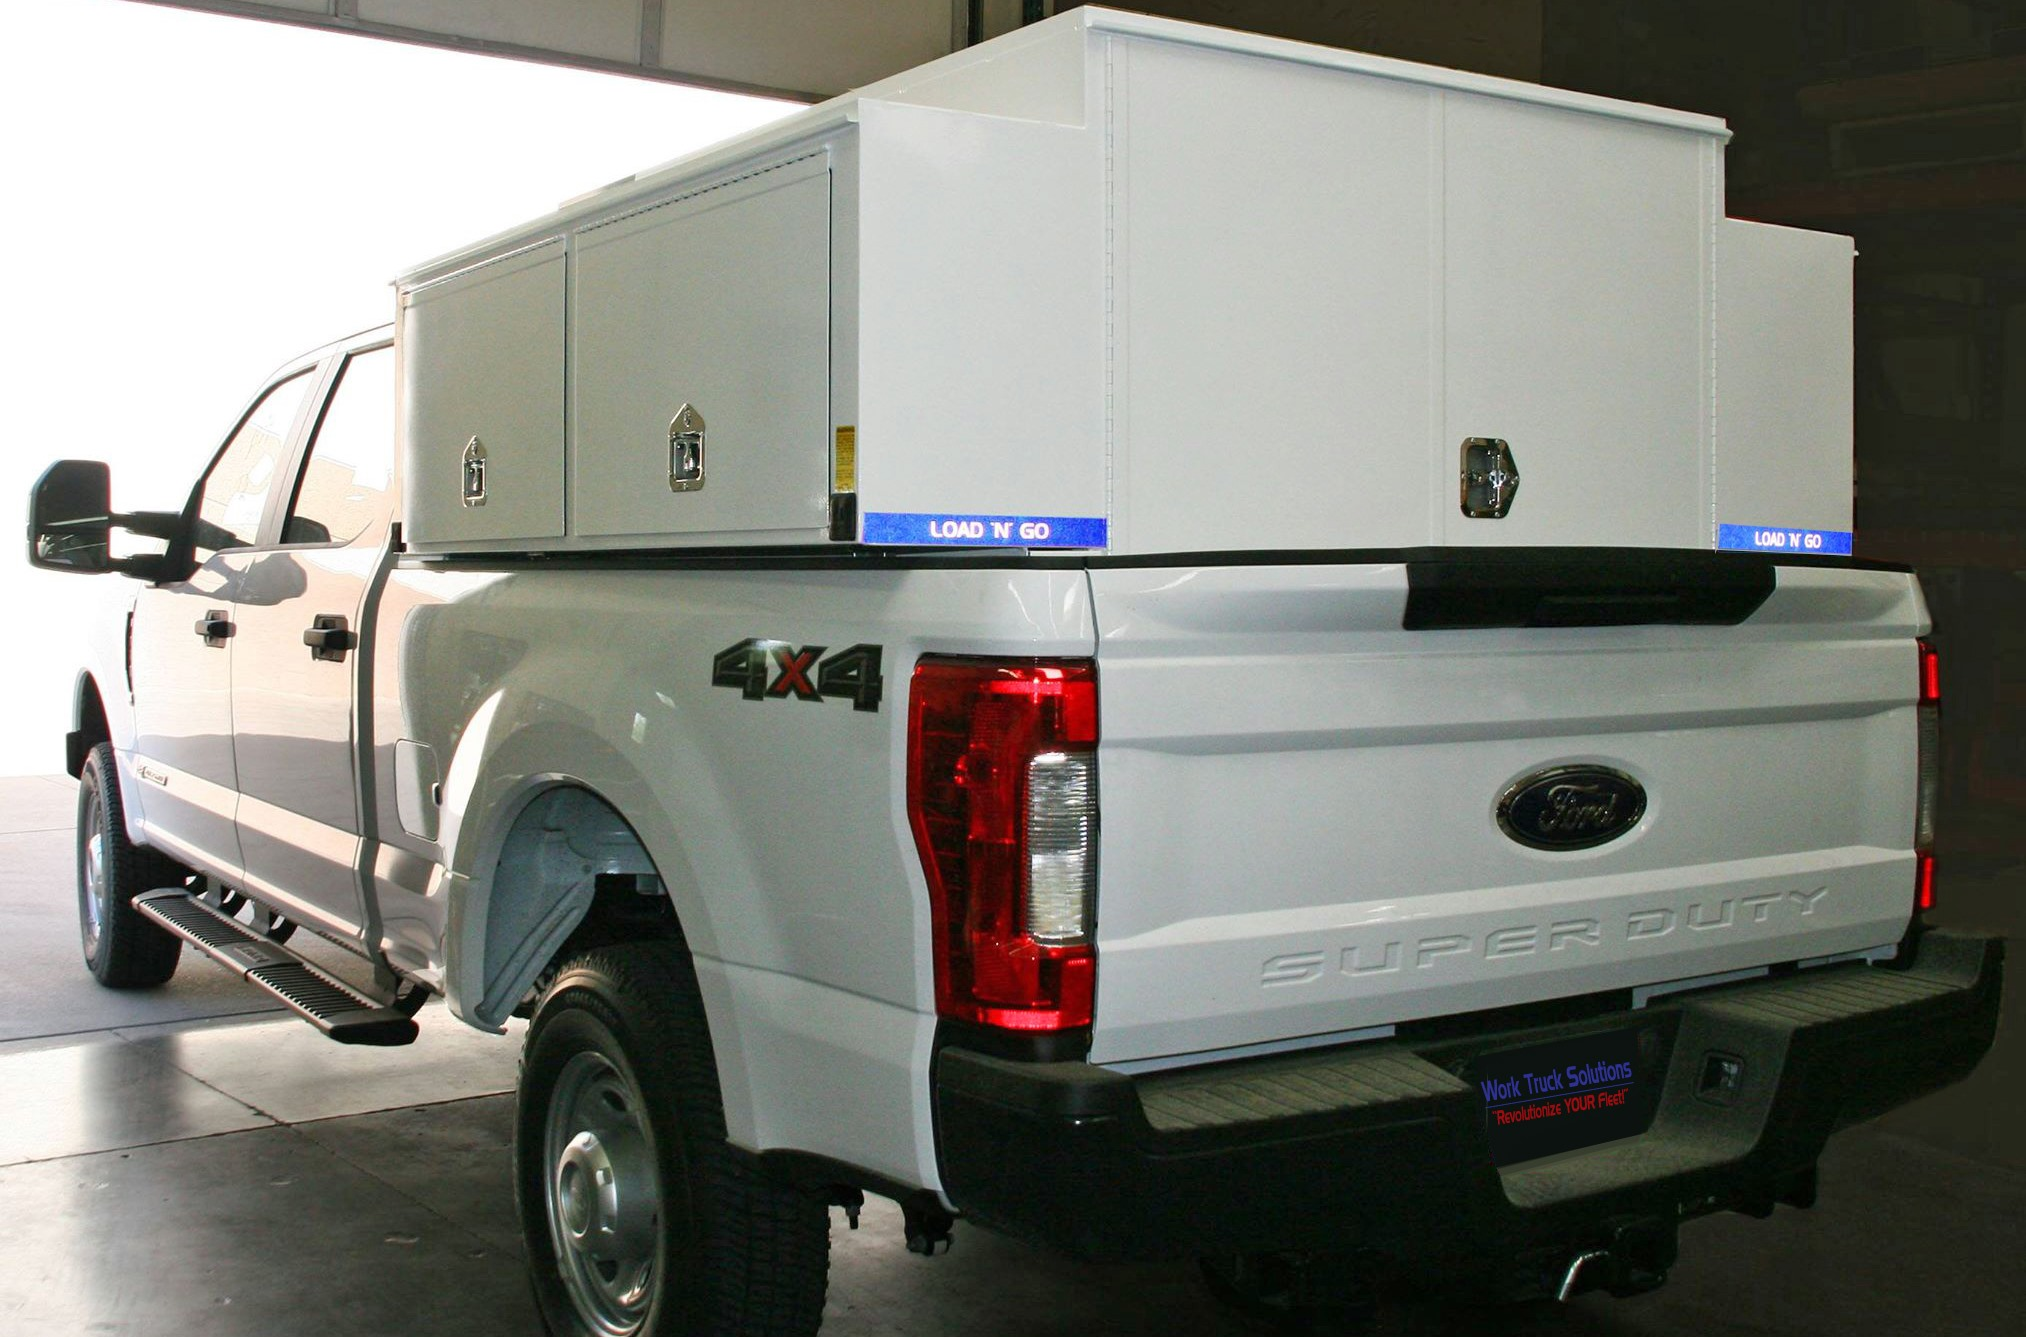 Load'N'Go ST-2000 - Ford SuperDuty